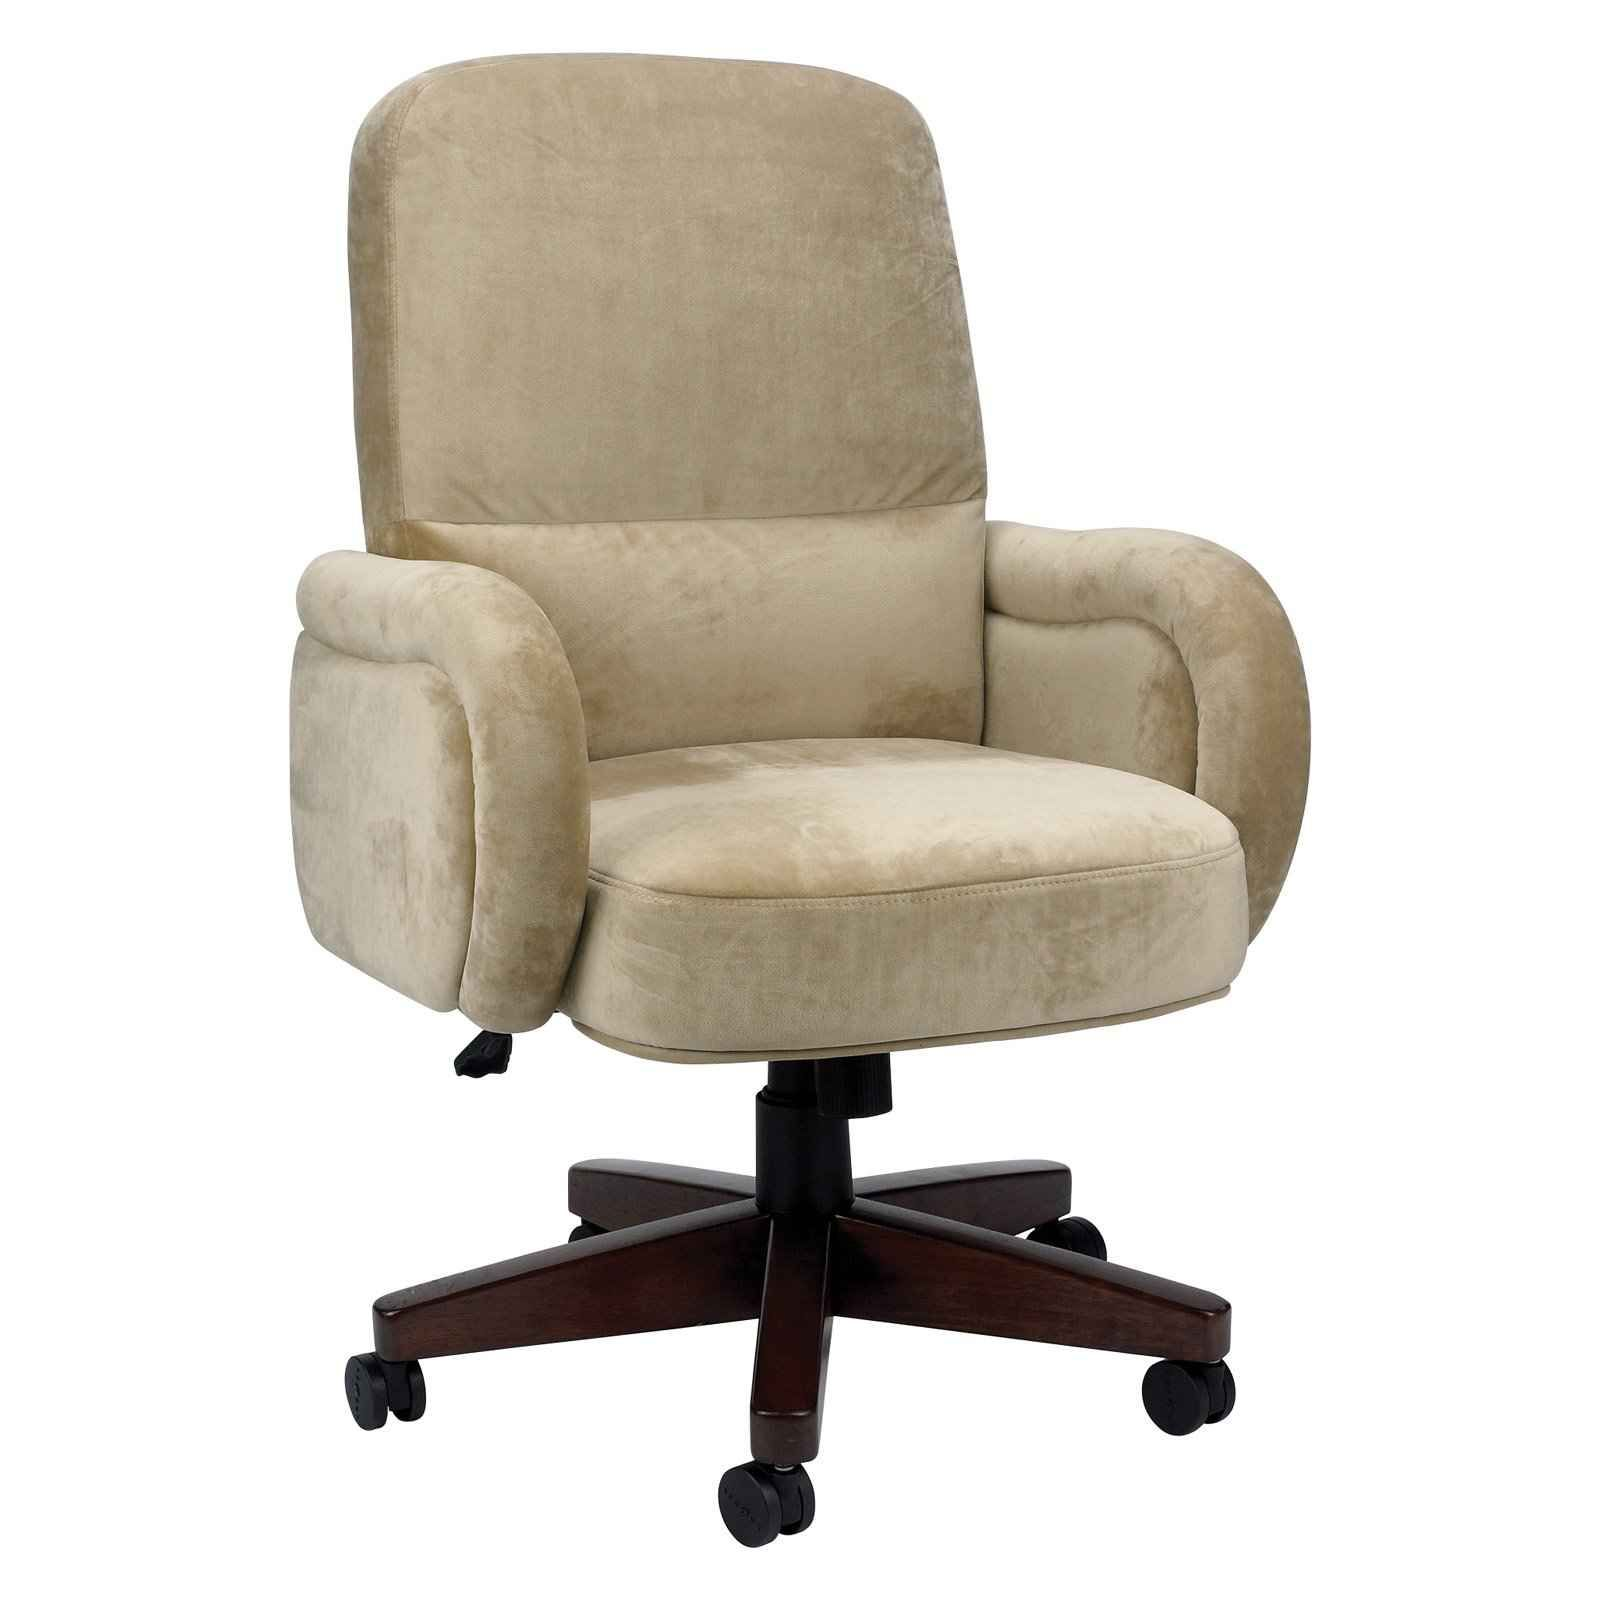 Boulder Luxury Microsuede Executive Office Chair From La Z Boy Home Office Furniture Sets Best Computer Chairs Executive Office Chairs